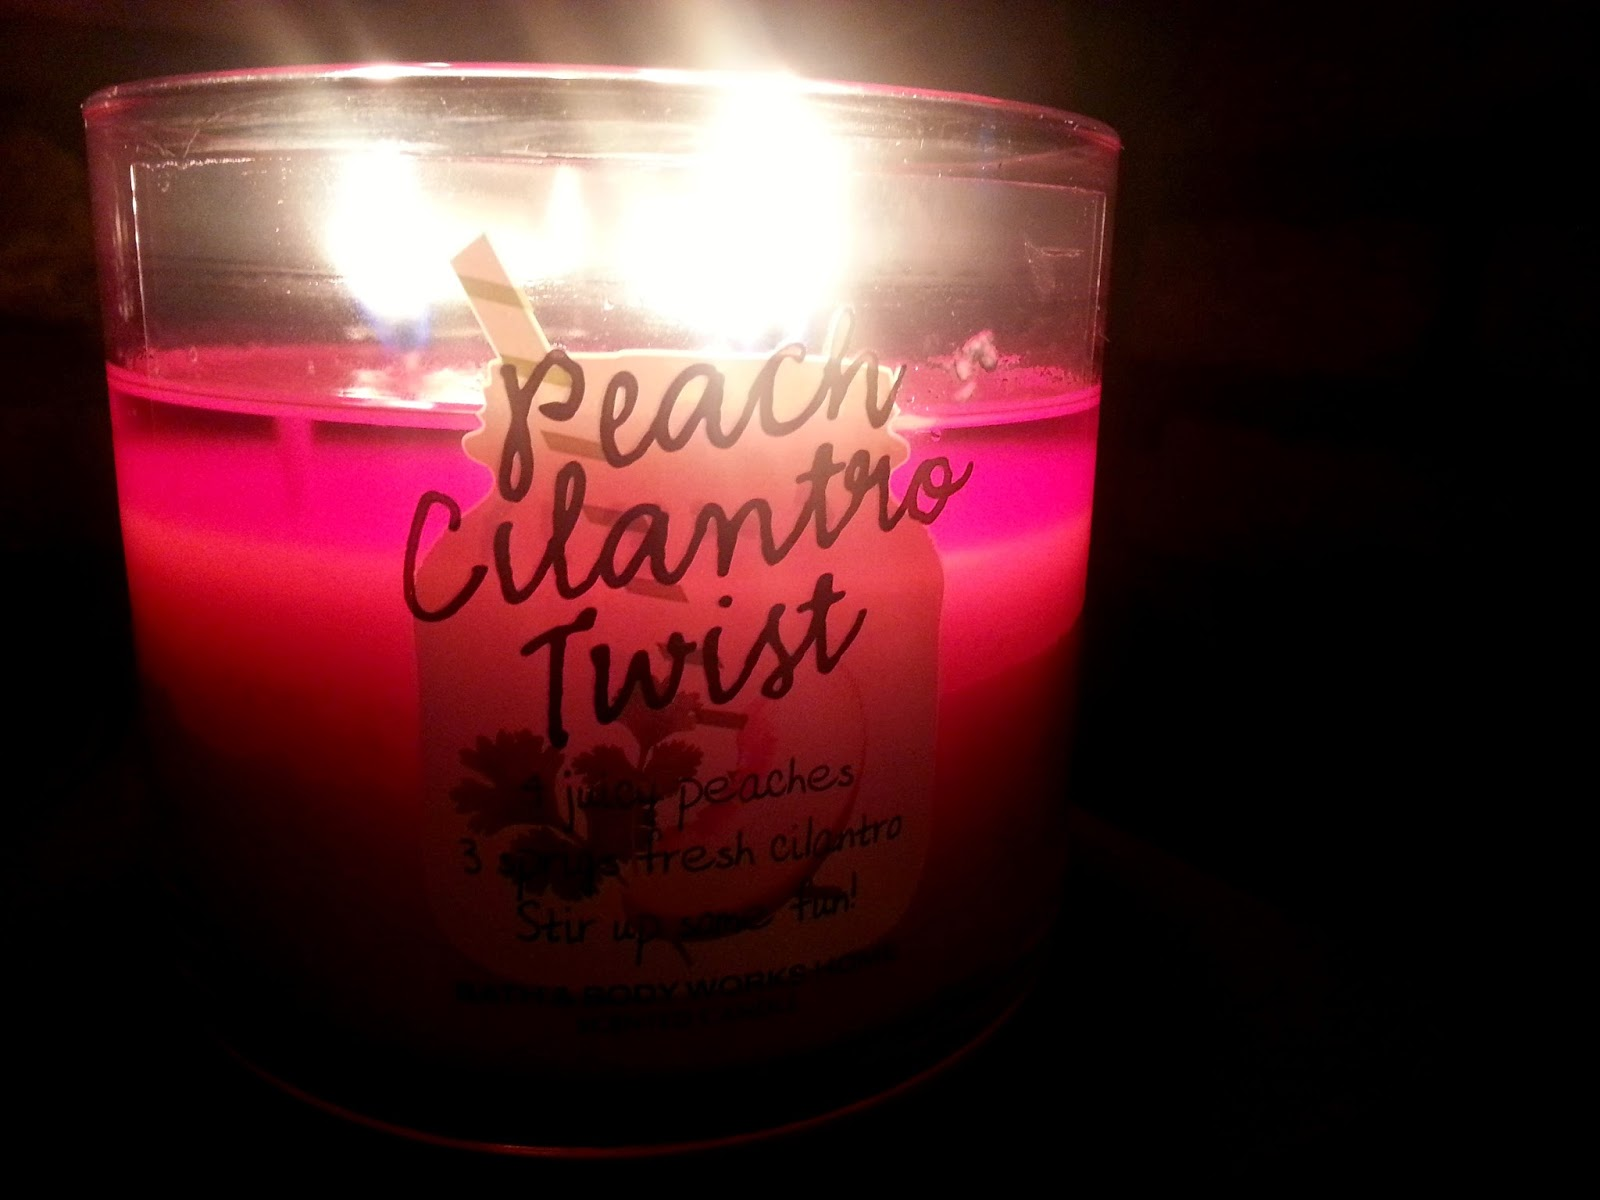 Bath & Body Works Peach Cilantro Twist Candle